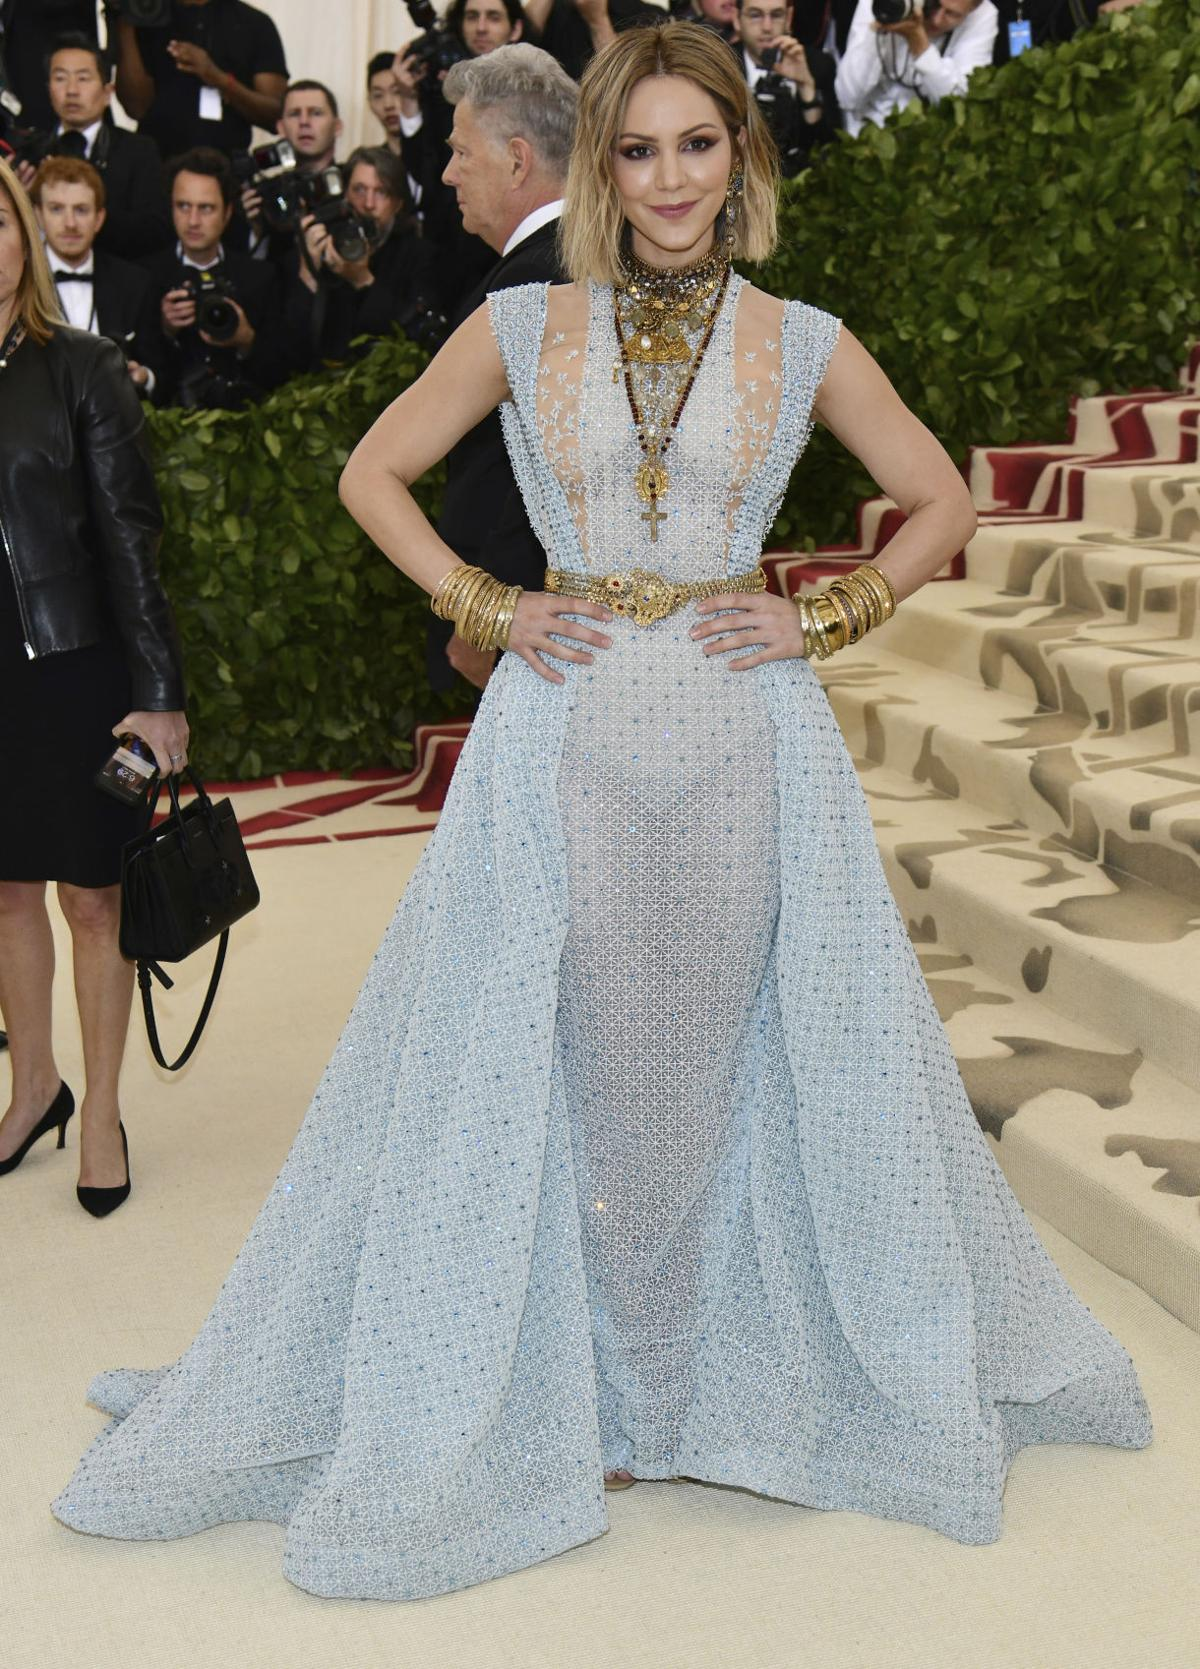 Photos: Celebrities blend fashion, some religion at 2018 Met Gala ...